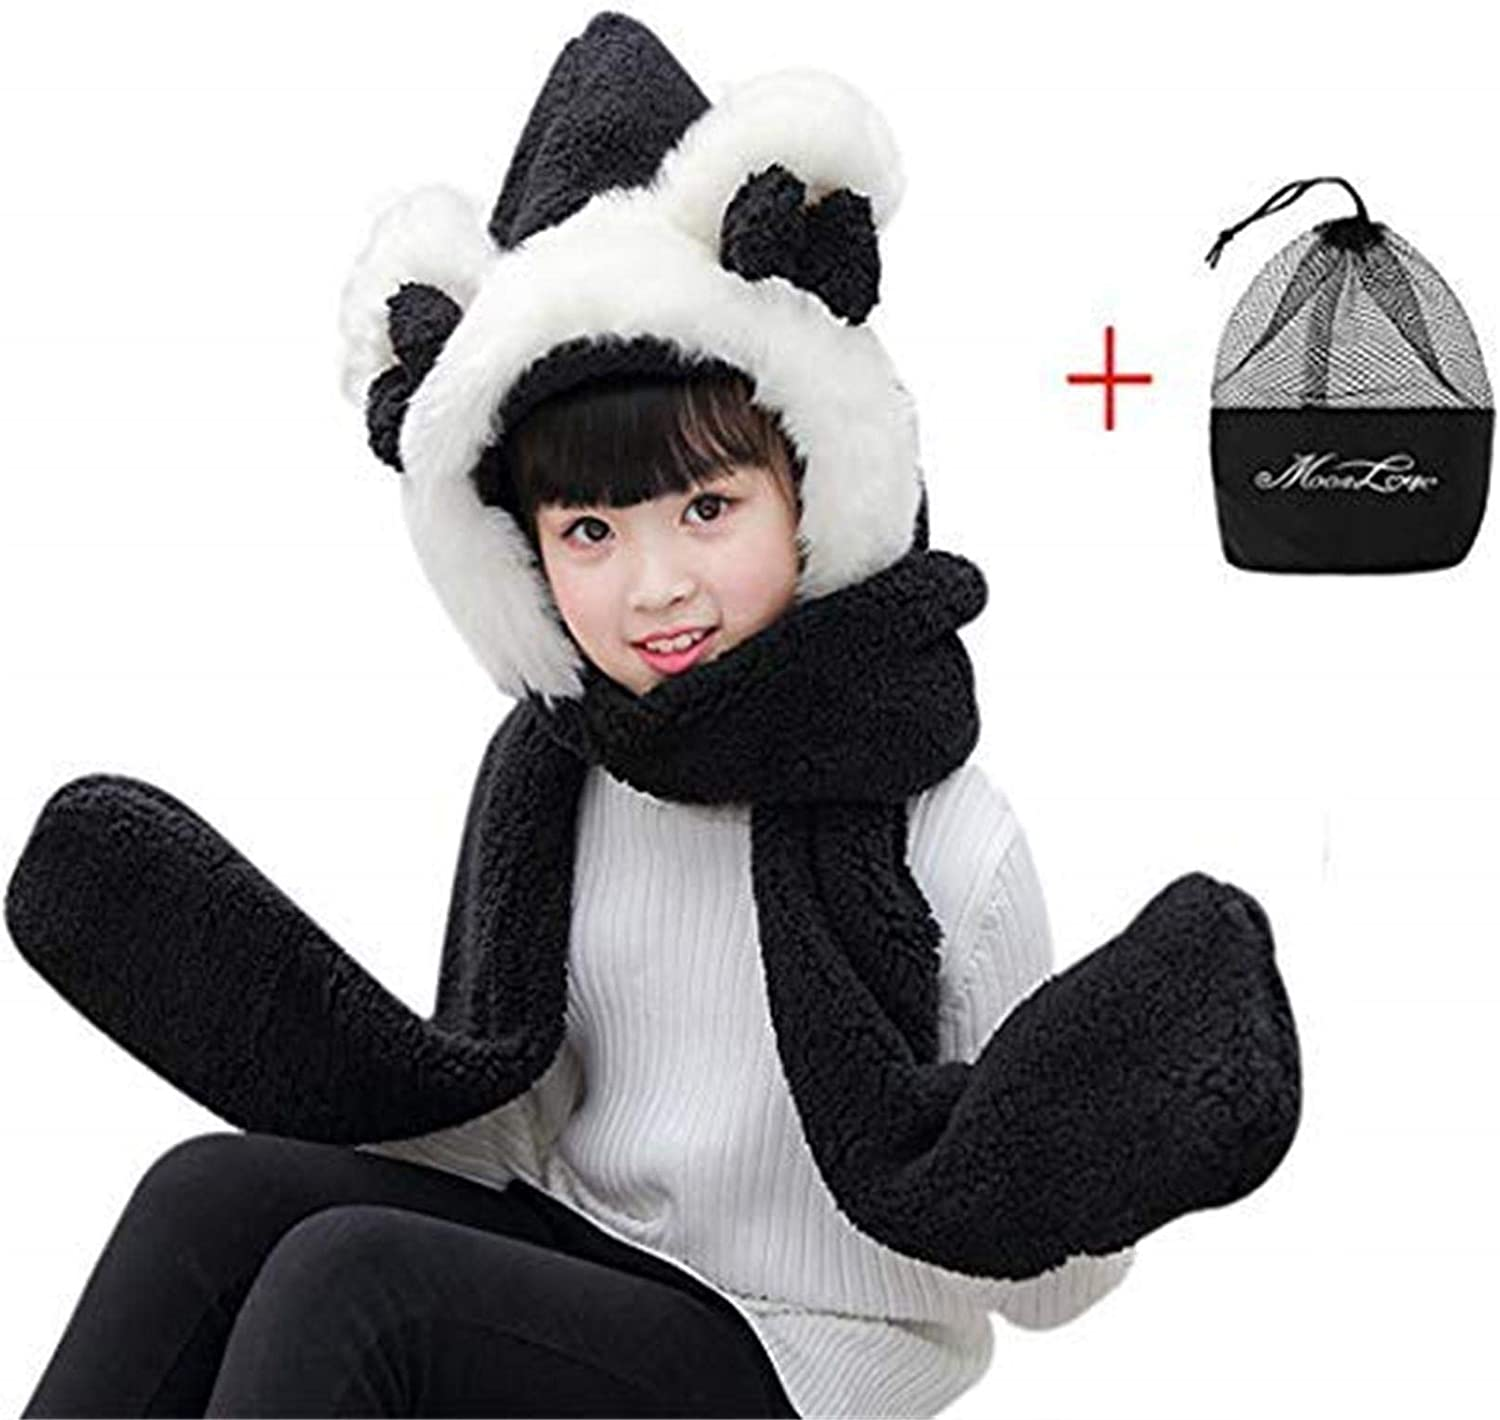 Winter Warm Plush Hooded Scarf With Mittens Cute Cartoon Plush Hoodie Gloves Pocket Earflap Hat Costume Party Dress Hat Christmas//Birthday Gift For Kids Kids 3 In 1 Hat Gloves Scarf Set